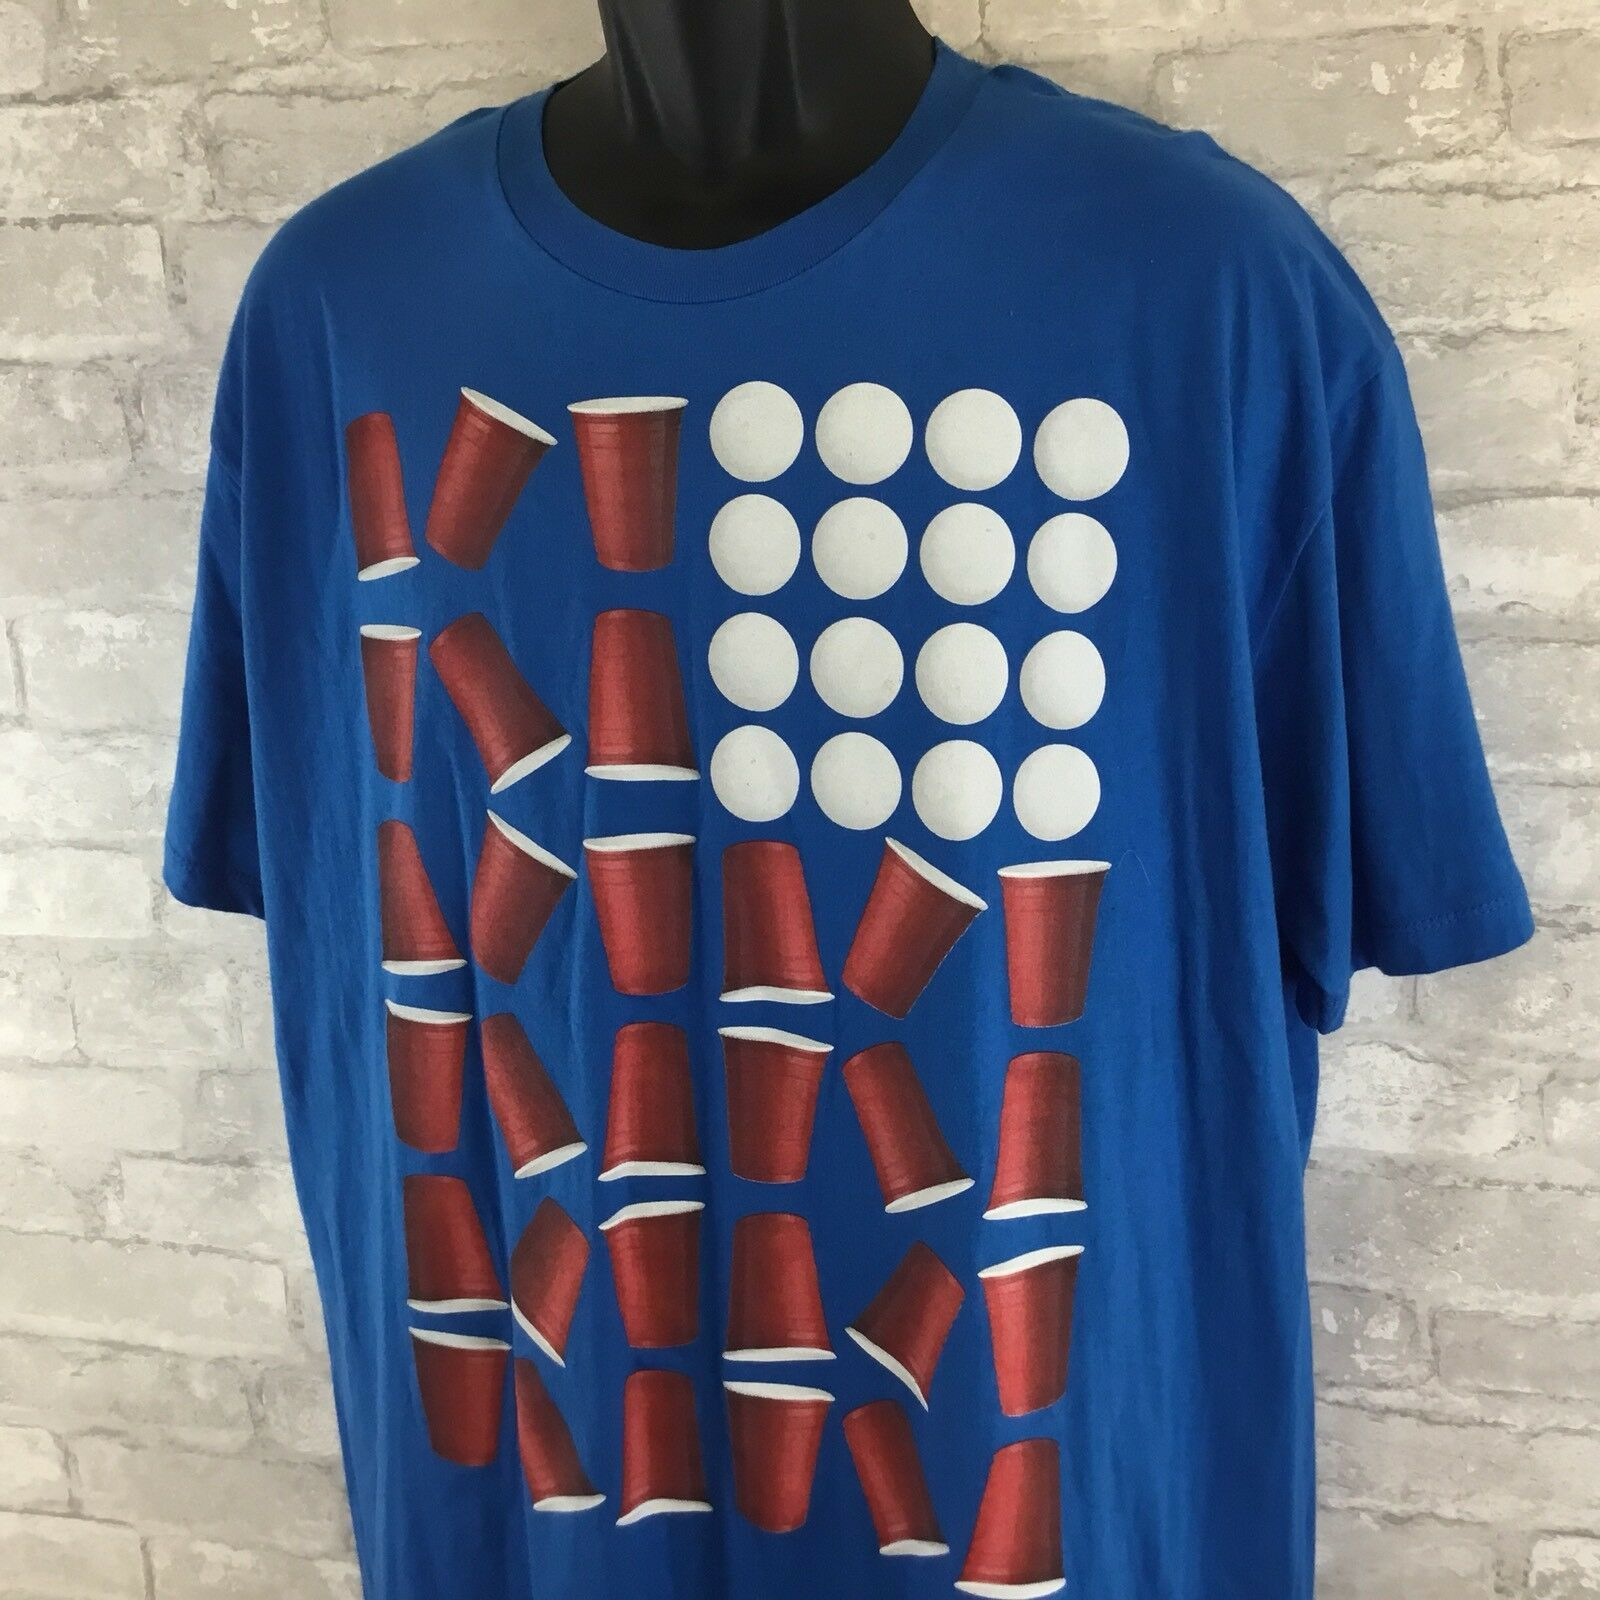 Primary image for Men's Univibe Red White Blue Beer Pong Graphic T-Shirt SZ XL